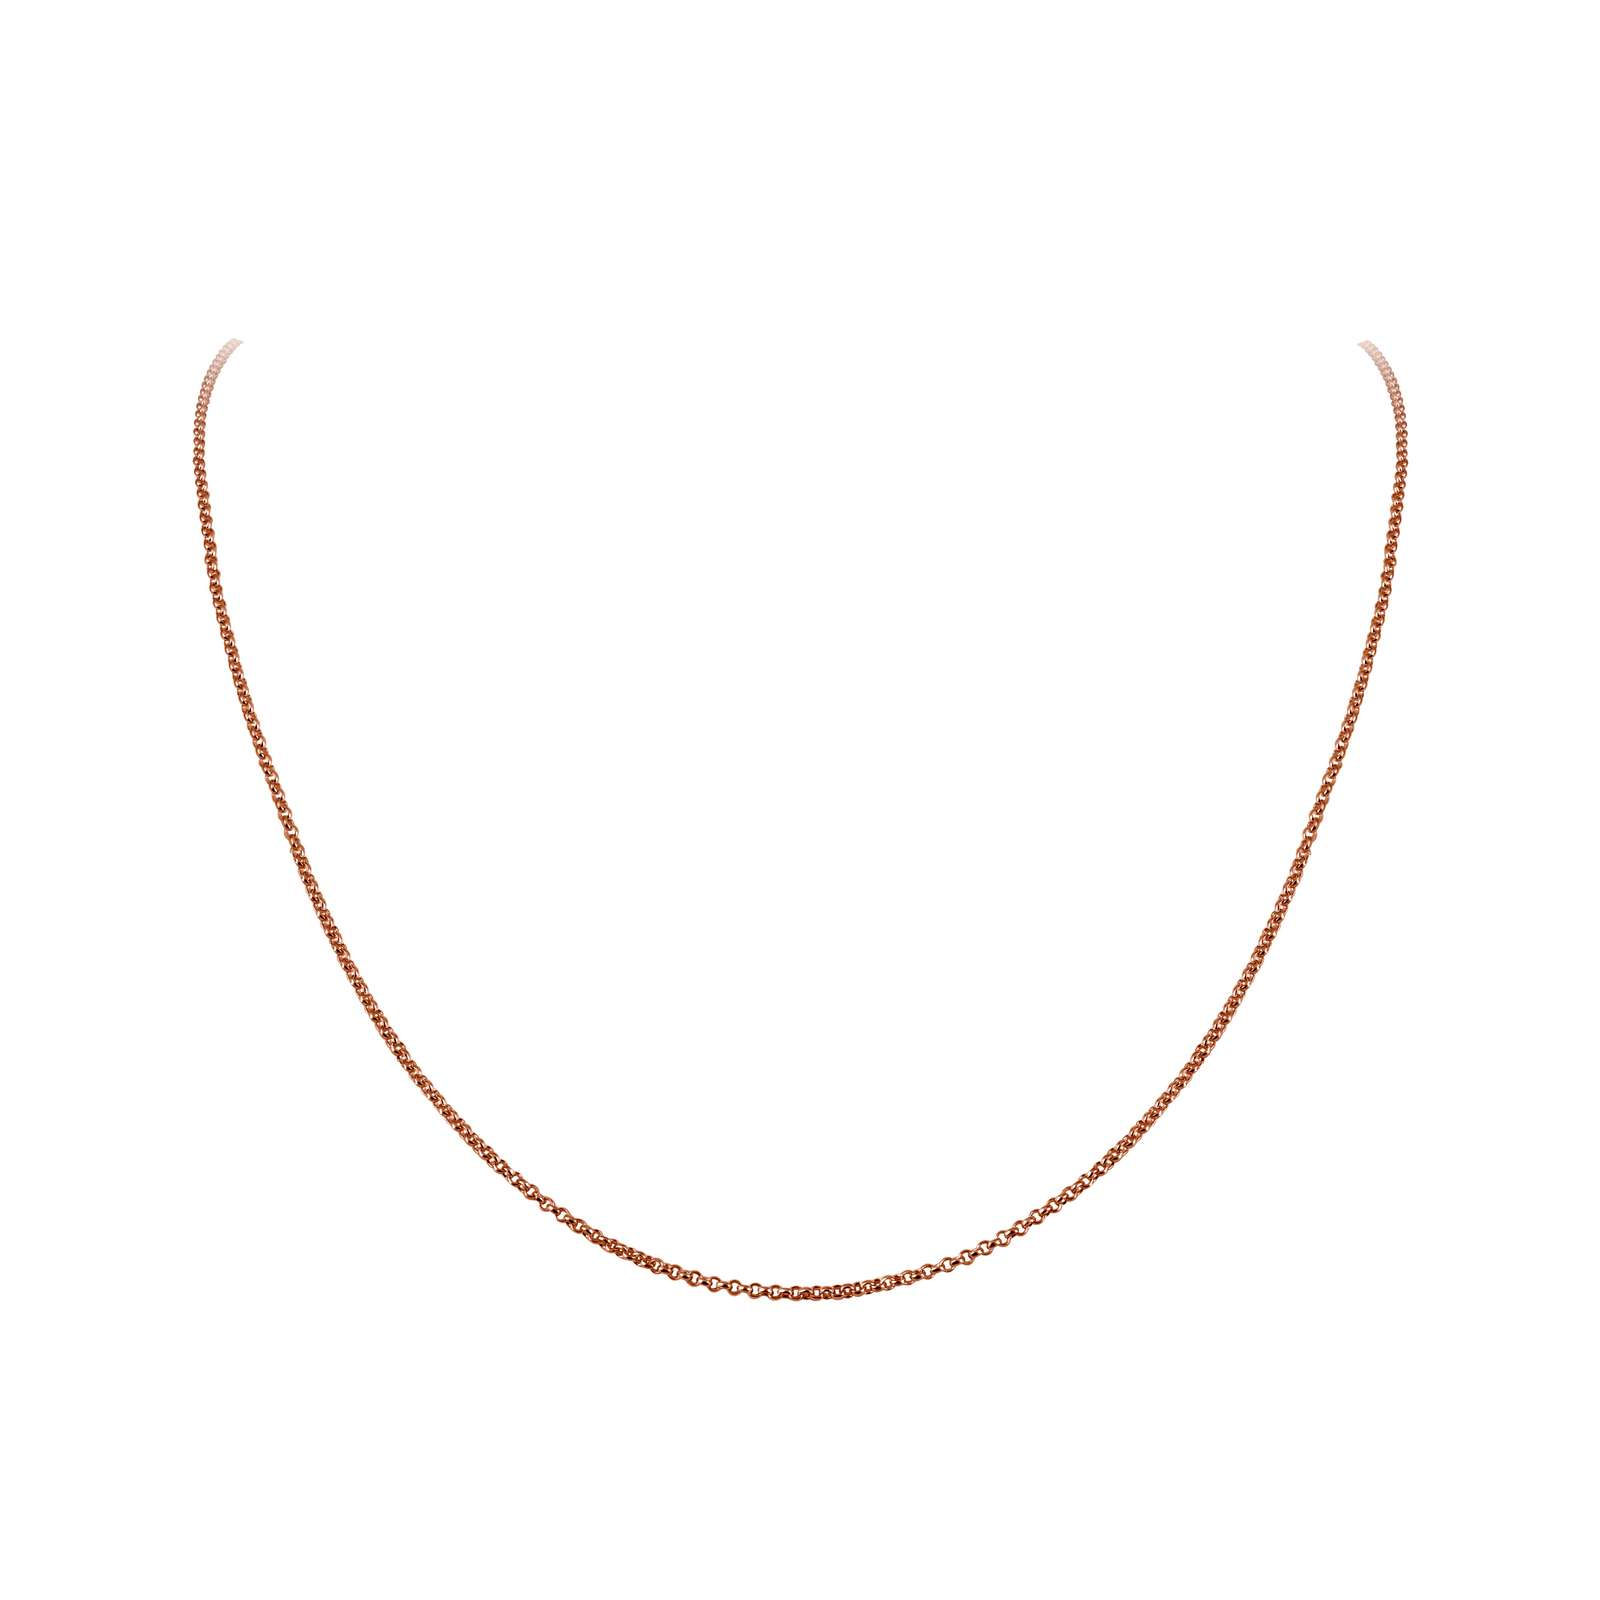 Classic No Stone Rose Gold Chain - Simple and versatile. This Lafonn chain is in rose gold plated sterling silver.